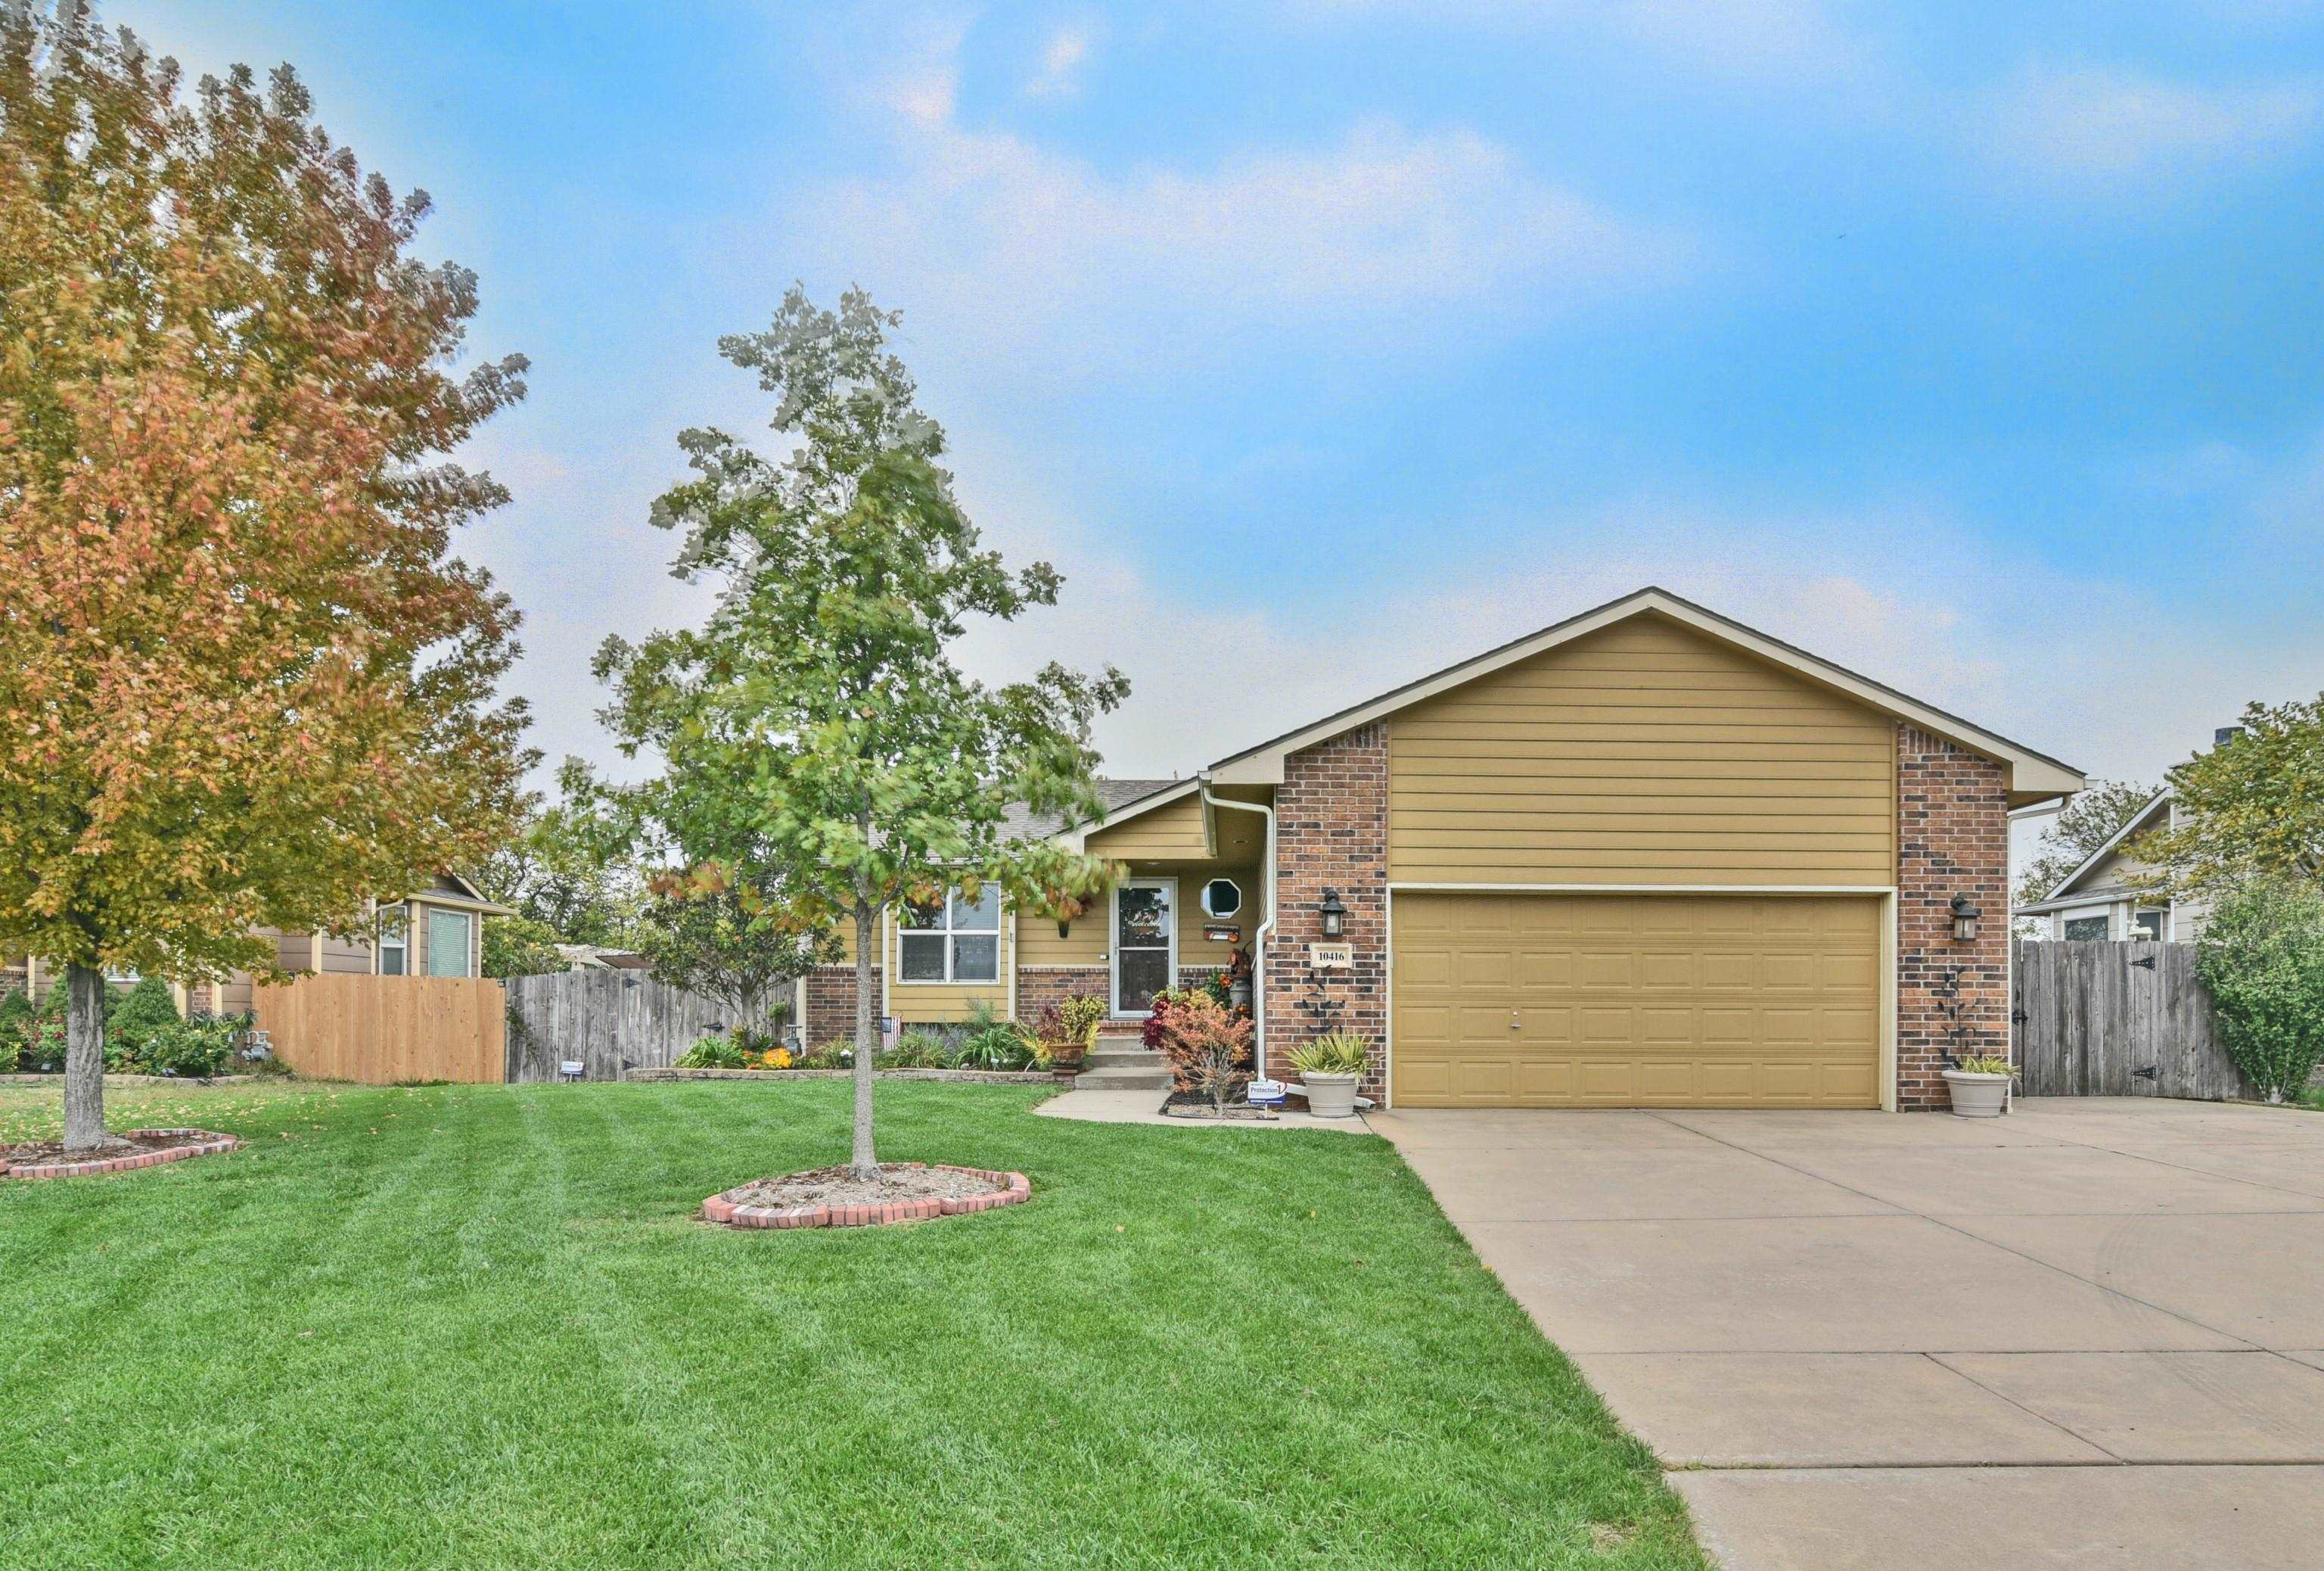 This is finally the home you have been dreaming of with 3 bedrooms, 3 baths, walk out basement, ingr